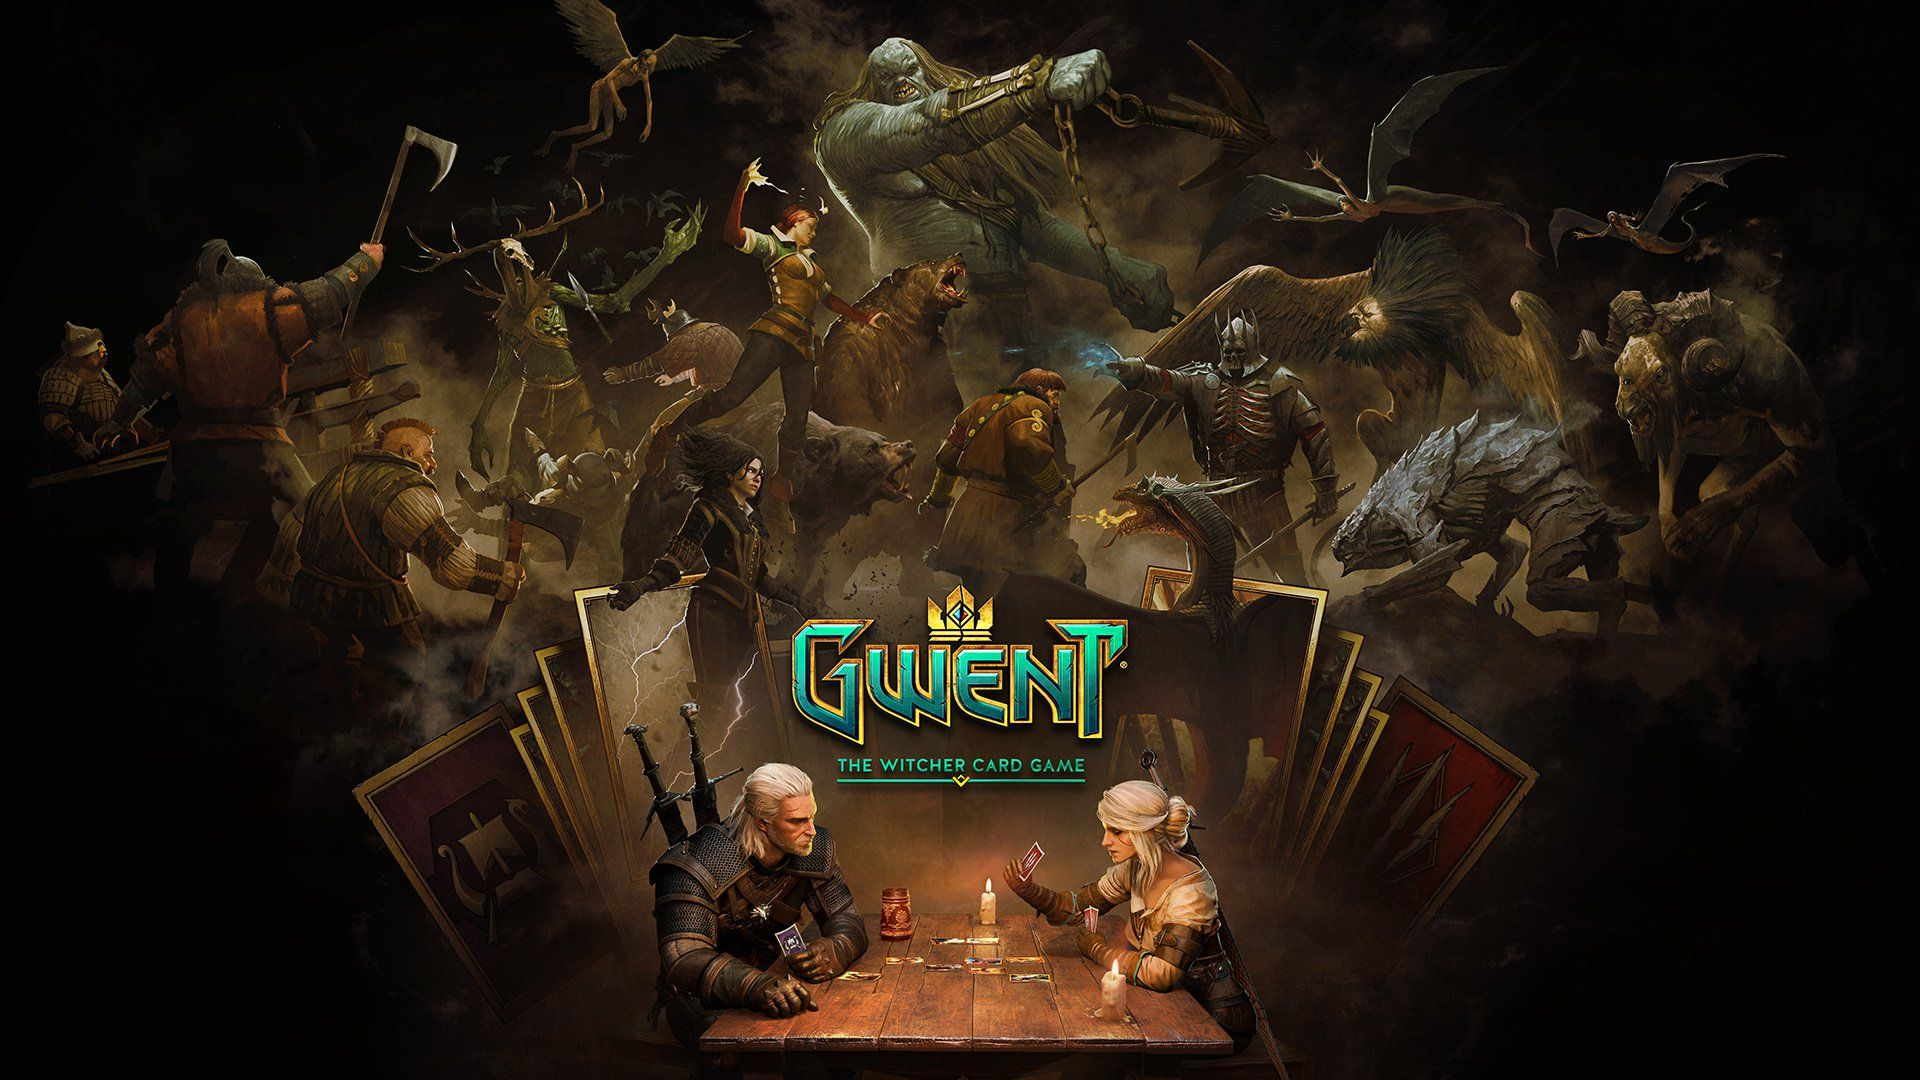 Witcher Card Game Spinoff Gwent Heading To Smartphones This Year The Witcher Card Games Keys Art